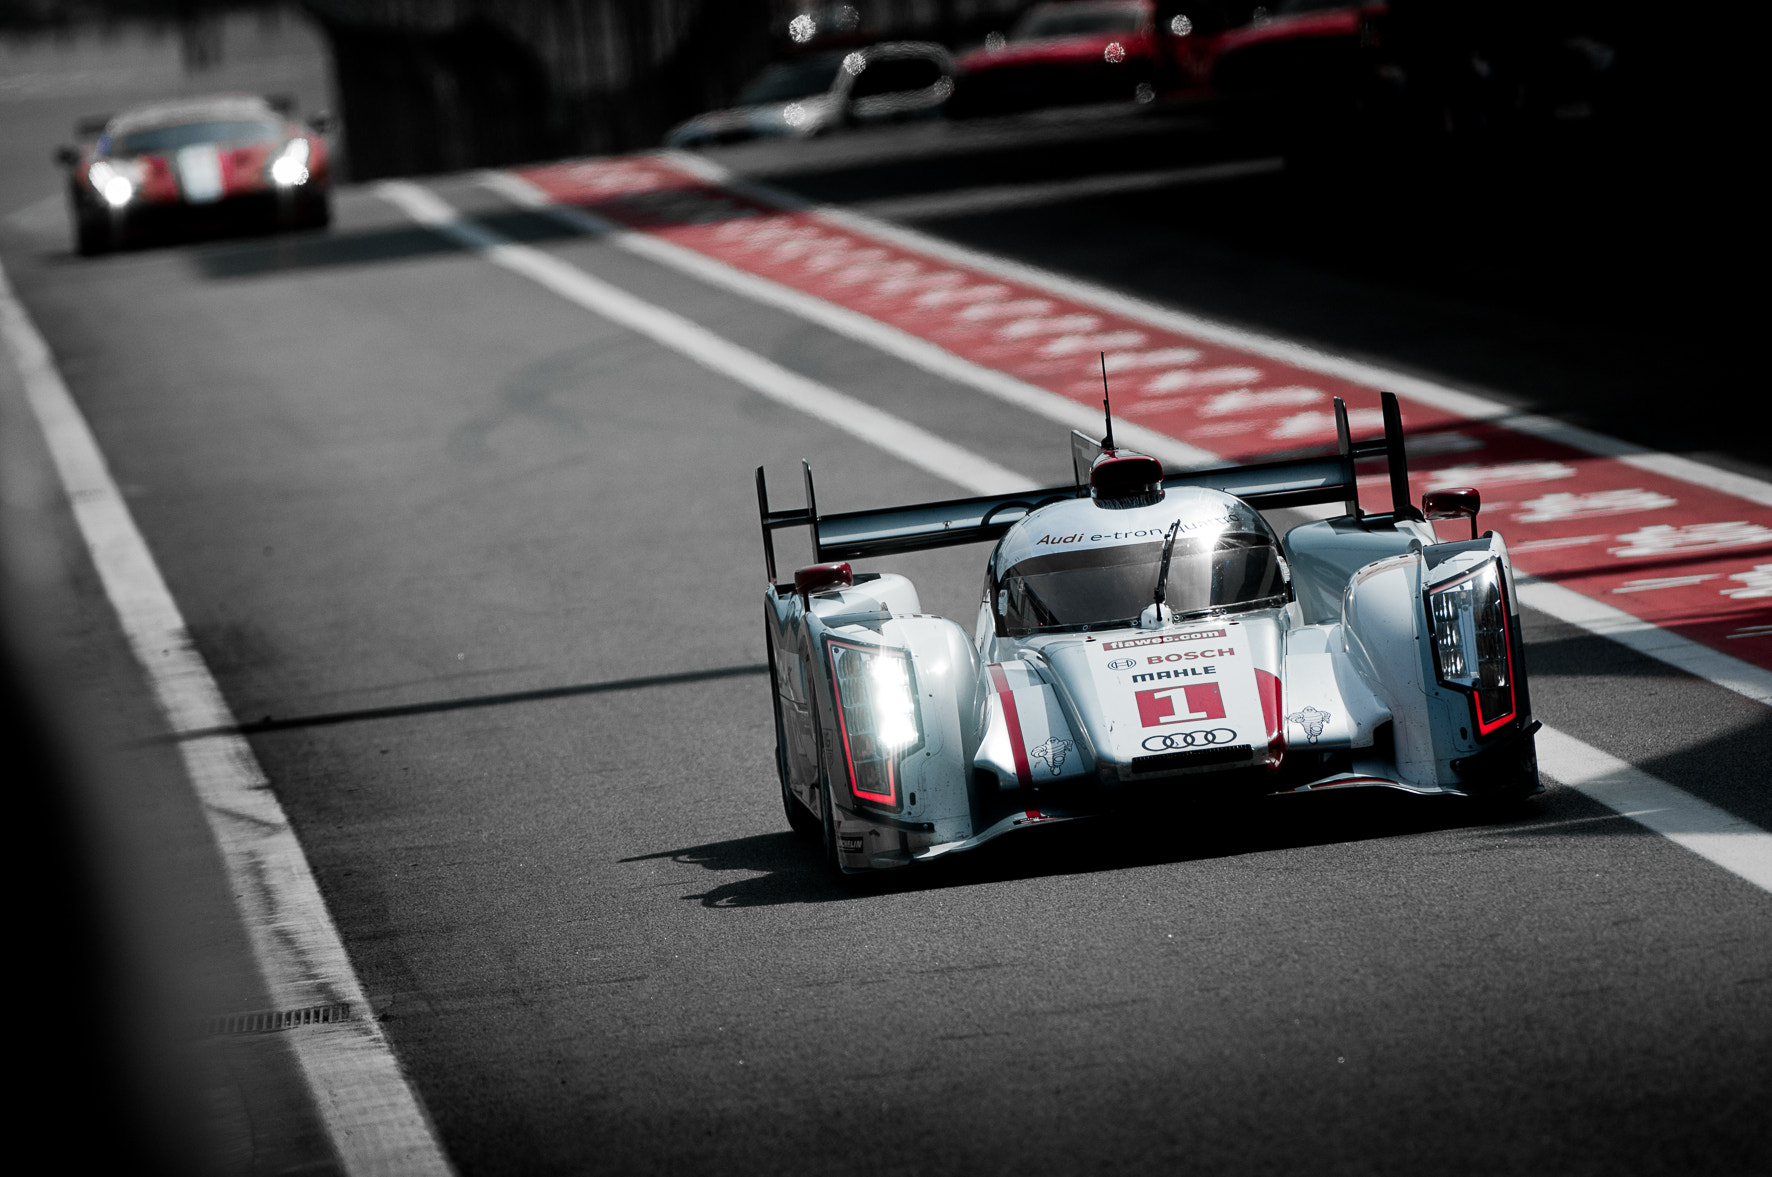 Photograph Audi - Pole position by Fabio Davini on 500px